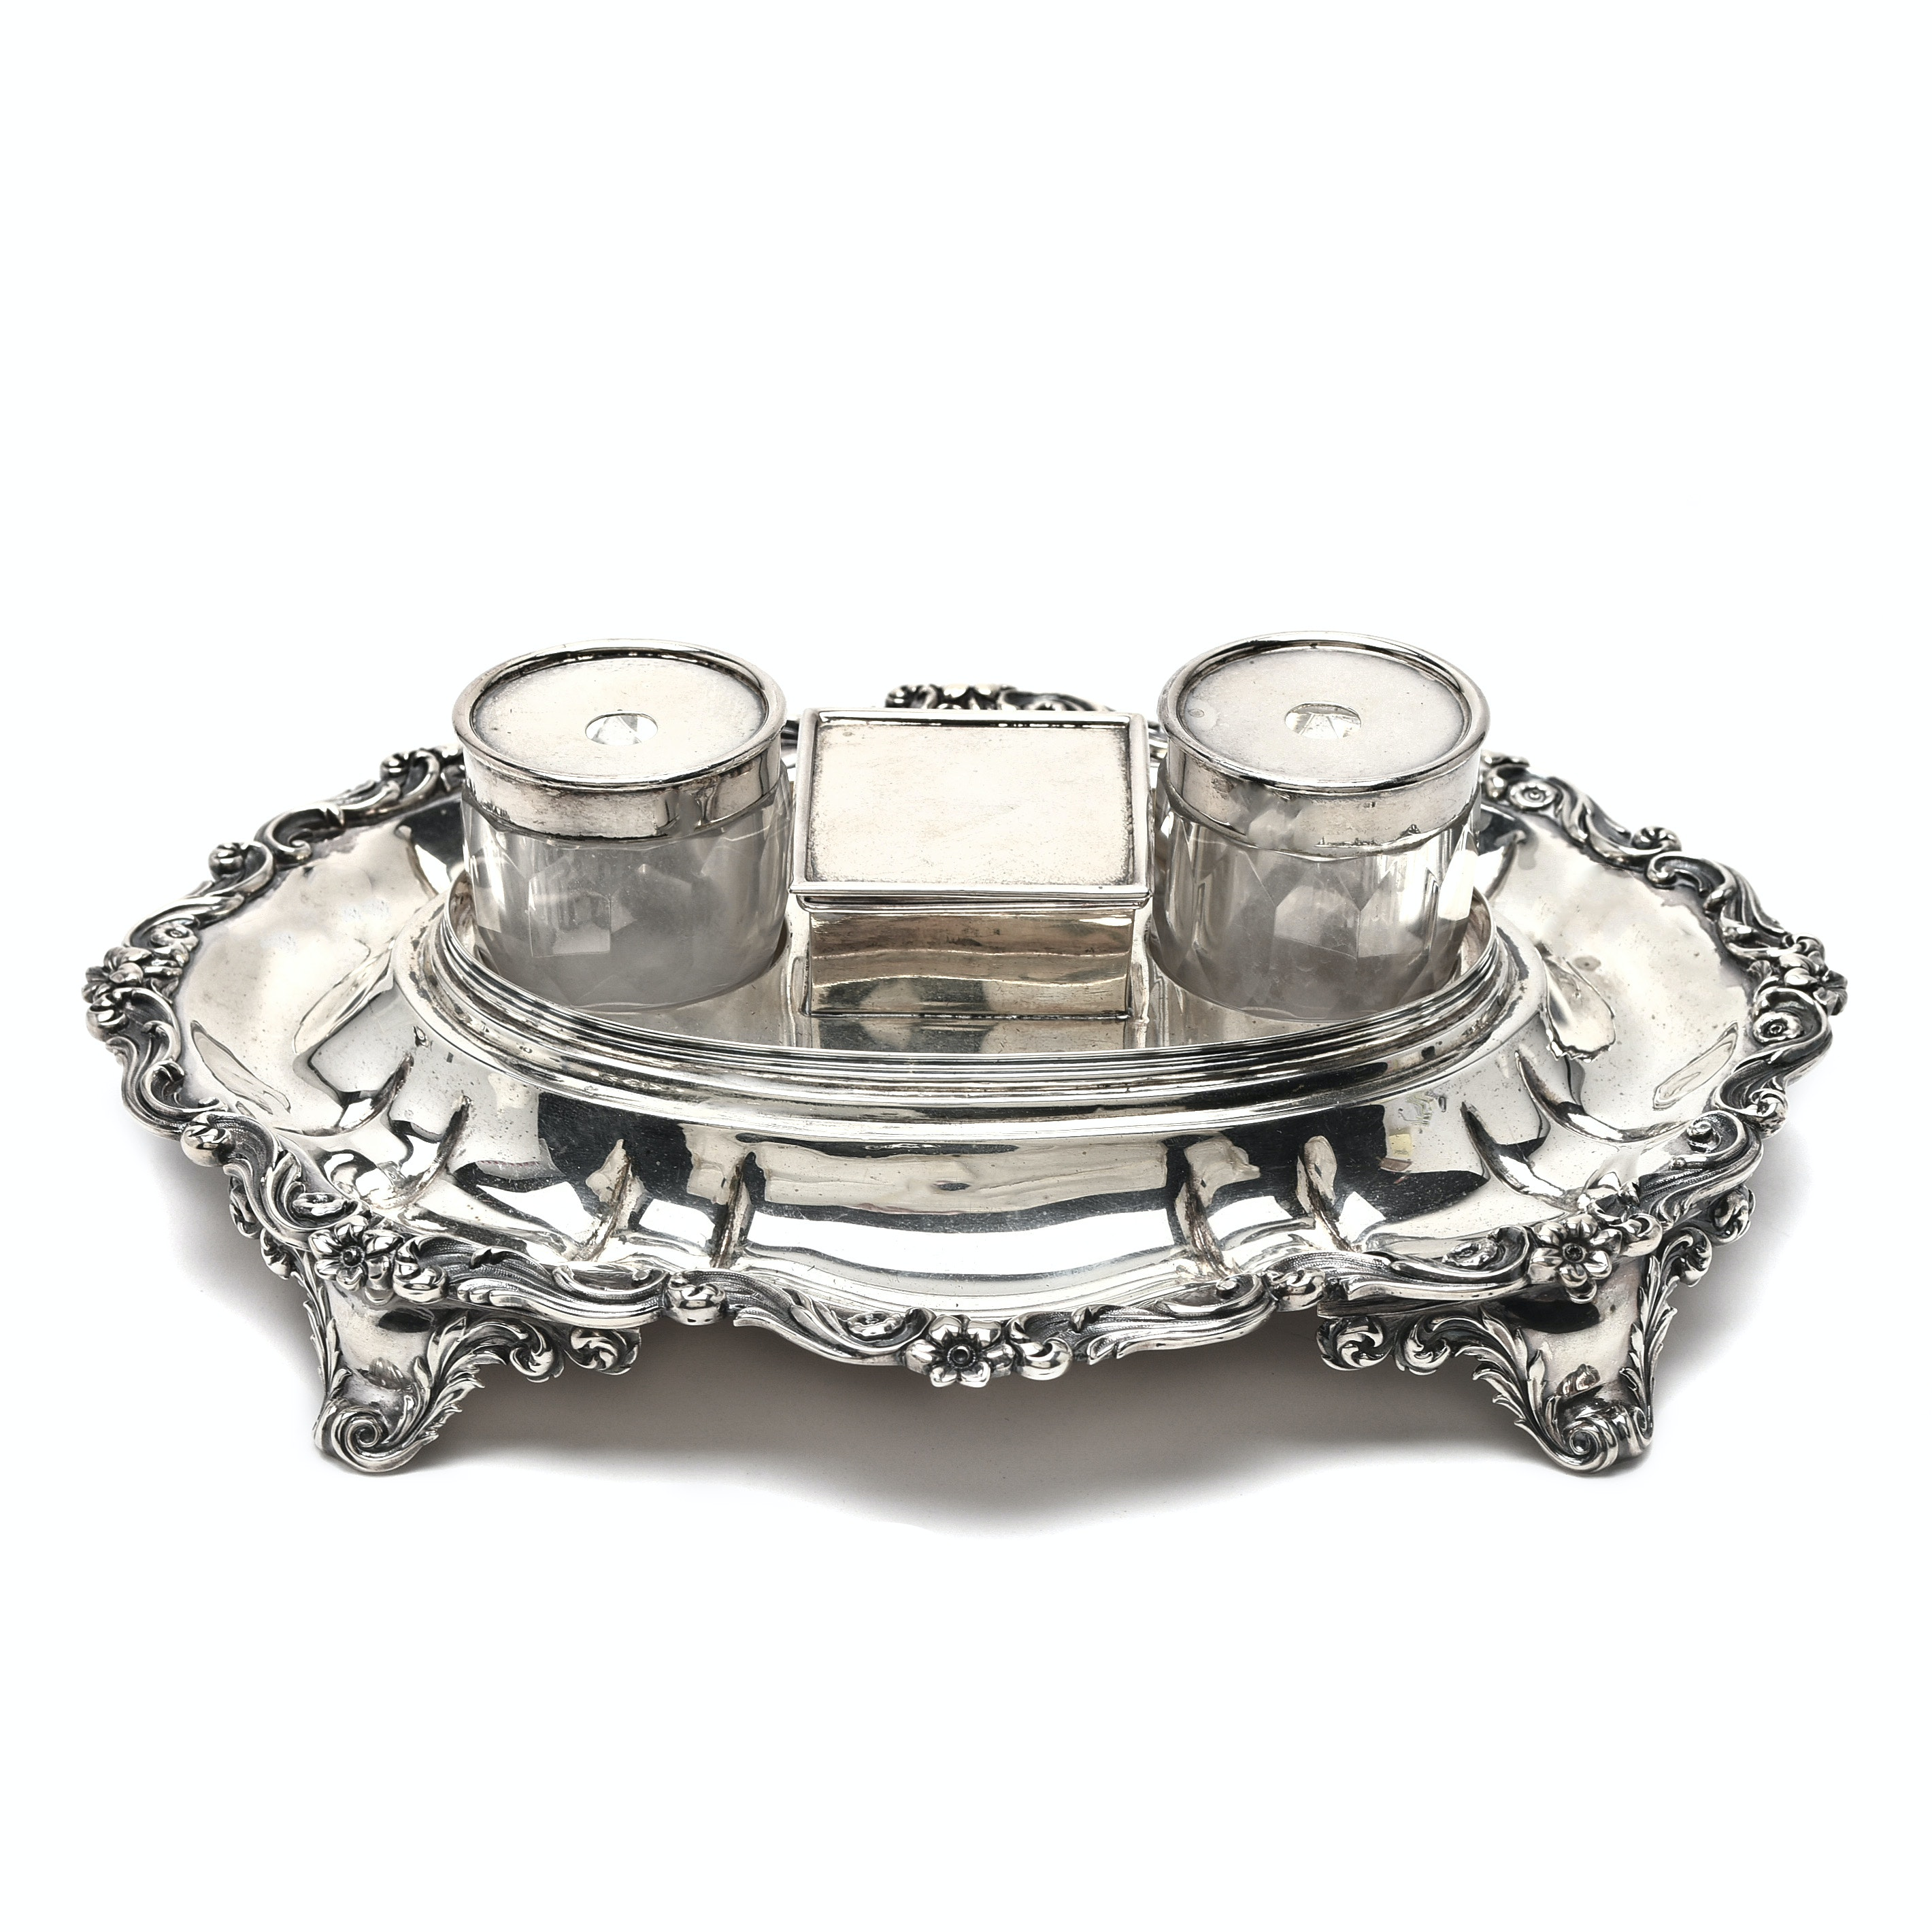 William IV Sterling Silver Ink Stand by James Charles Edington, London 1837